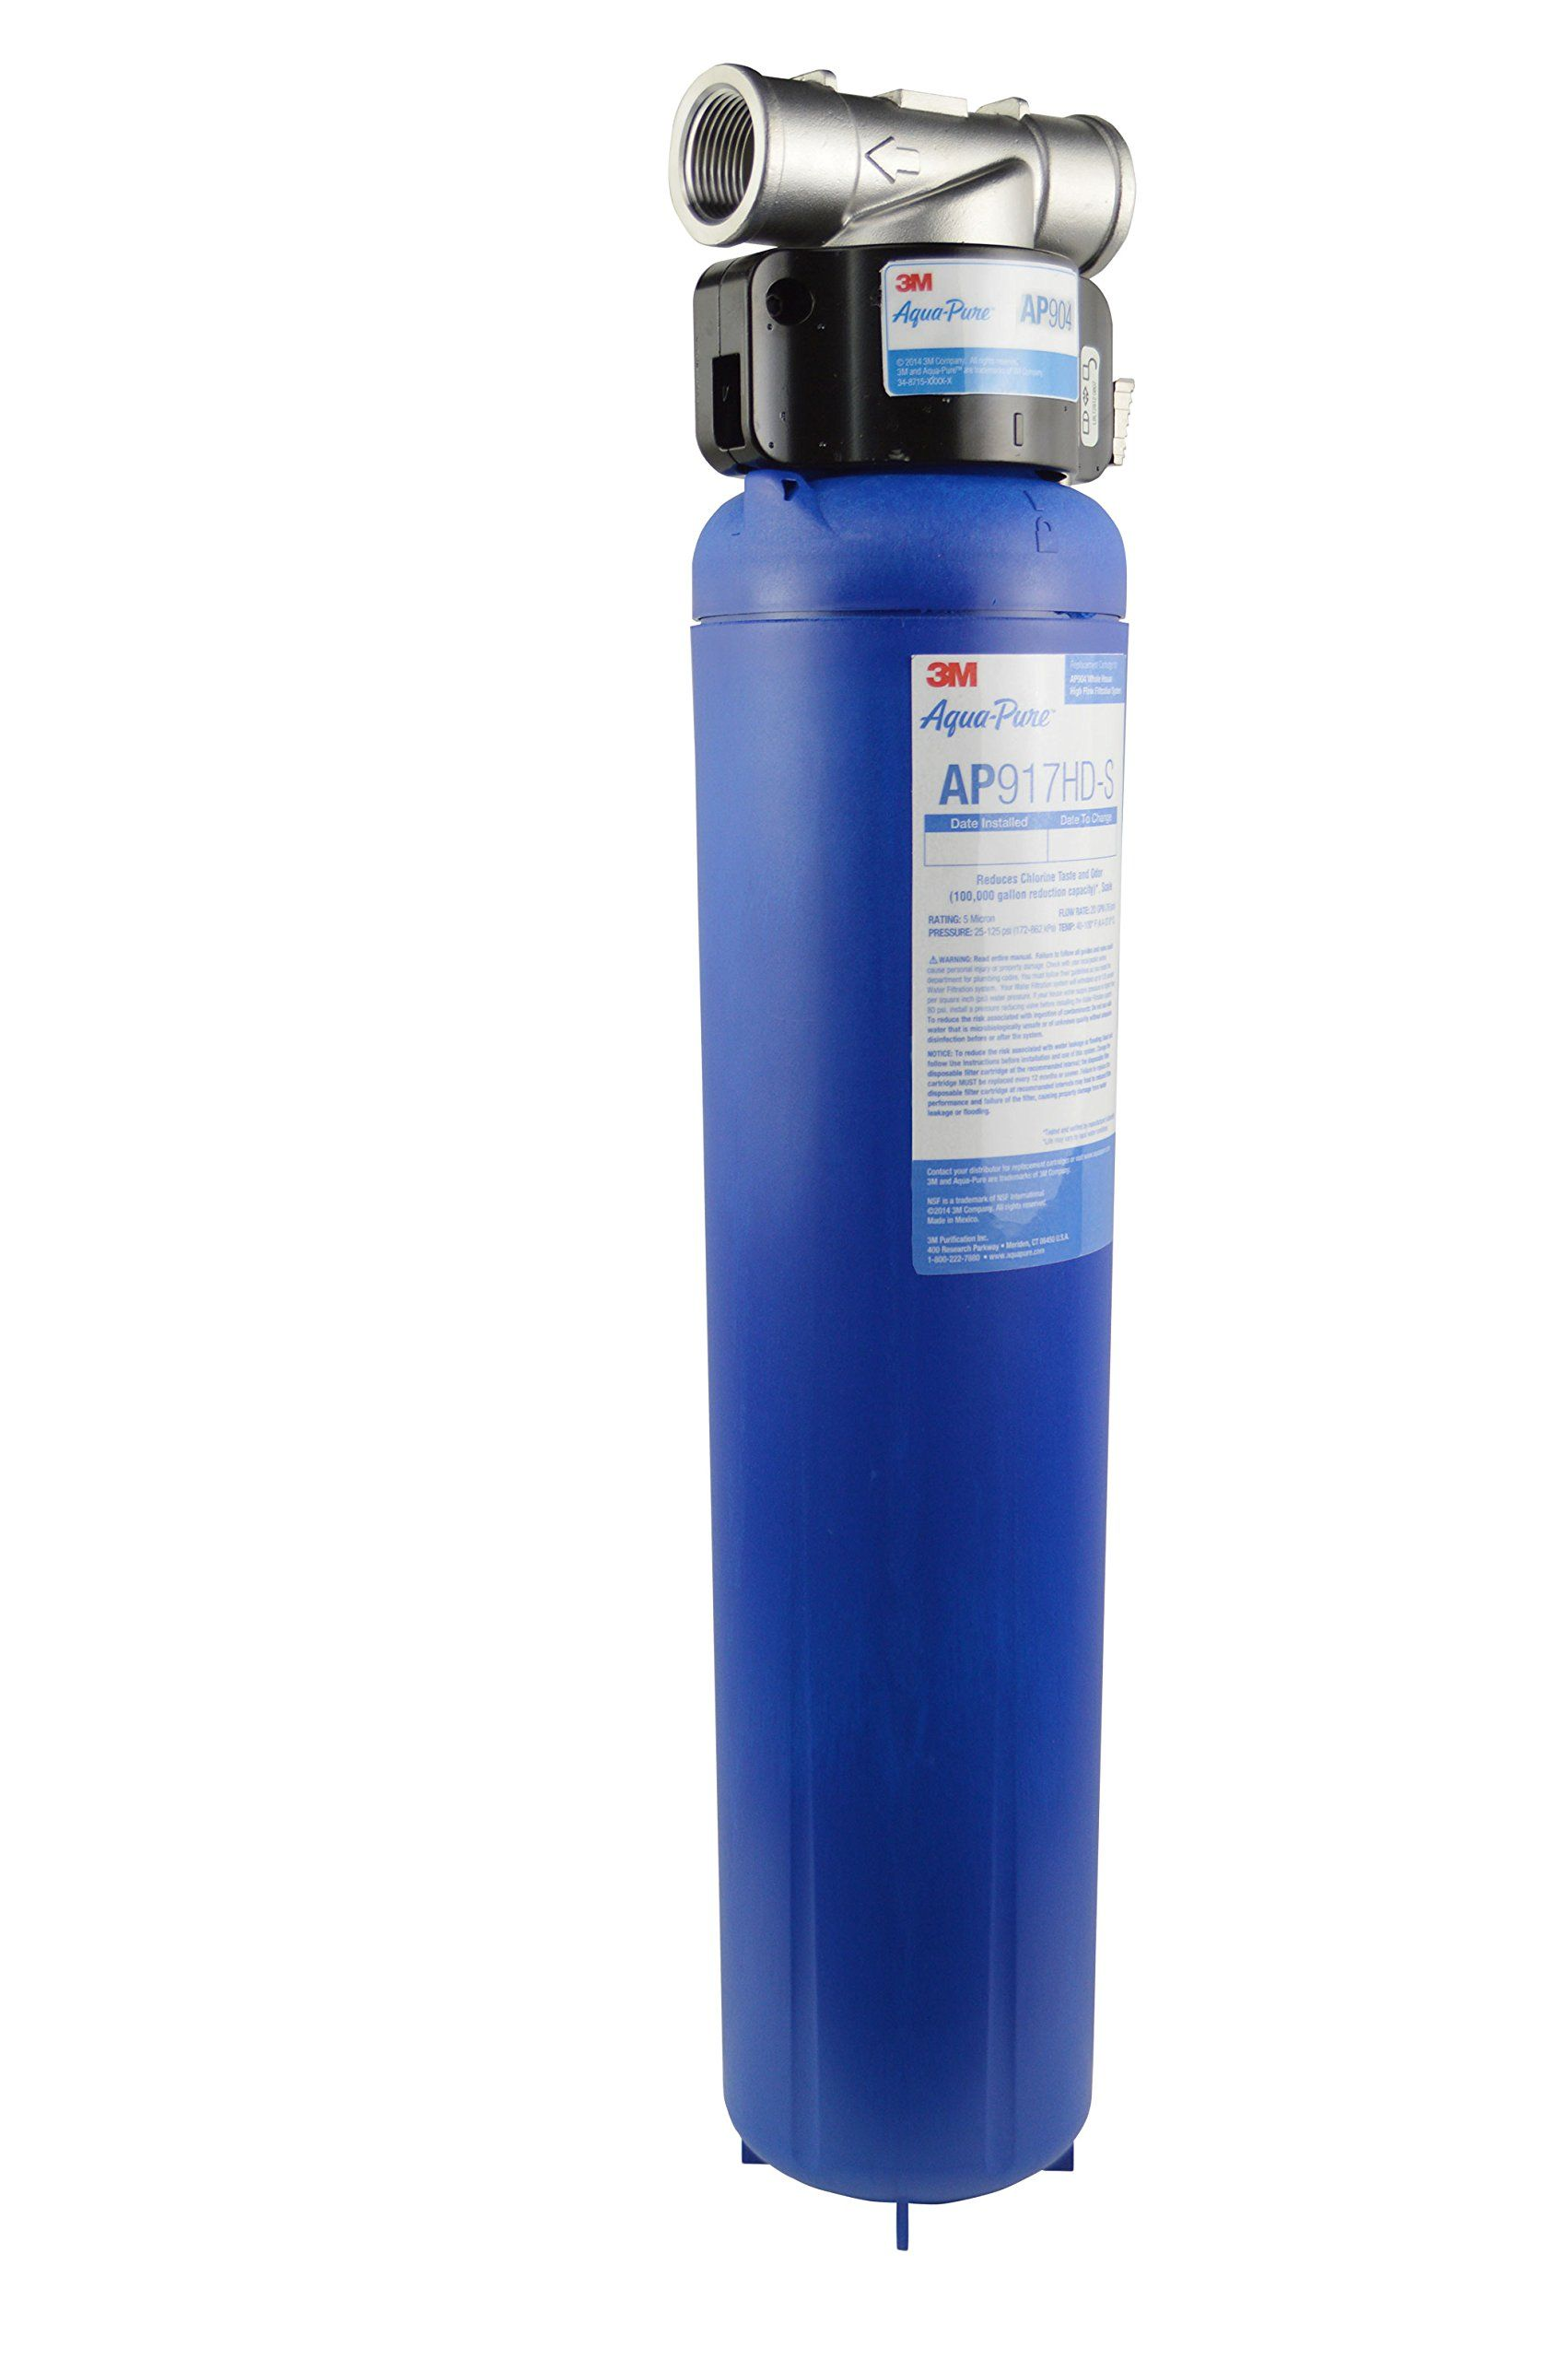 Aquapure whole house water filtration system water